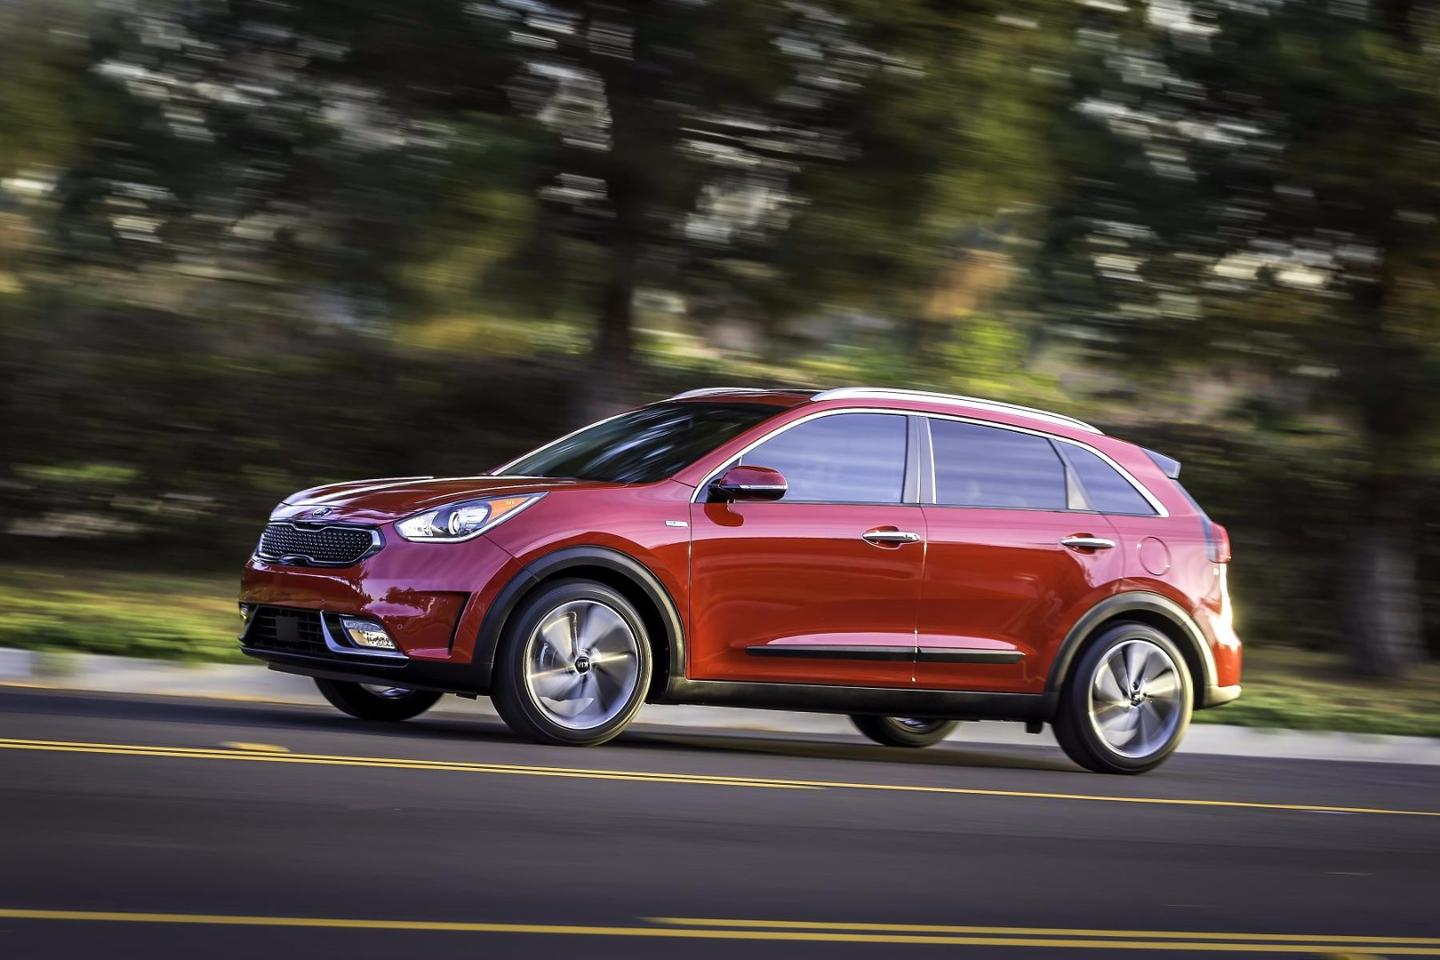 The Niro is based on an all-new eco-car platform the company plans to use as its electrified vehicle base going forward